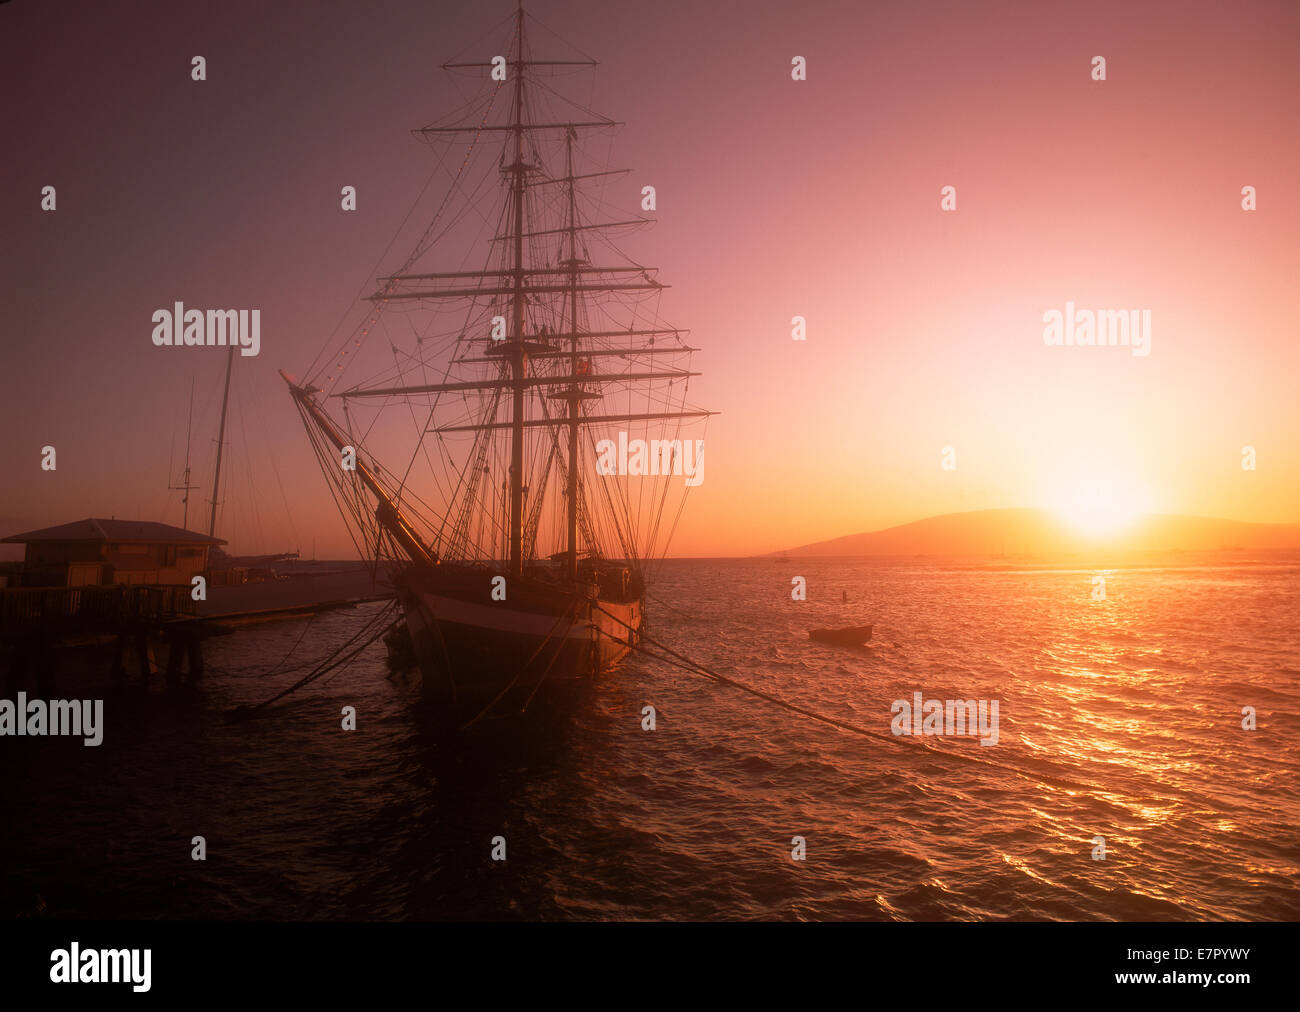 Schooner anchored in Lahaina on Island of Maui at sunset - Stock Image